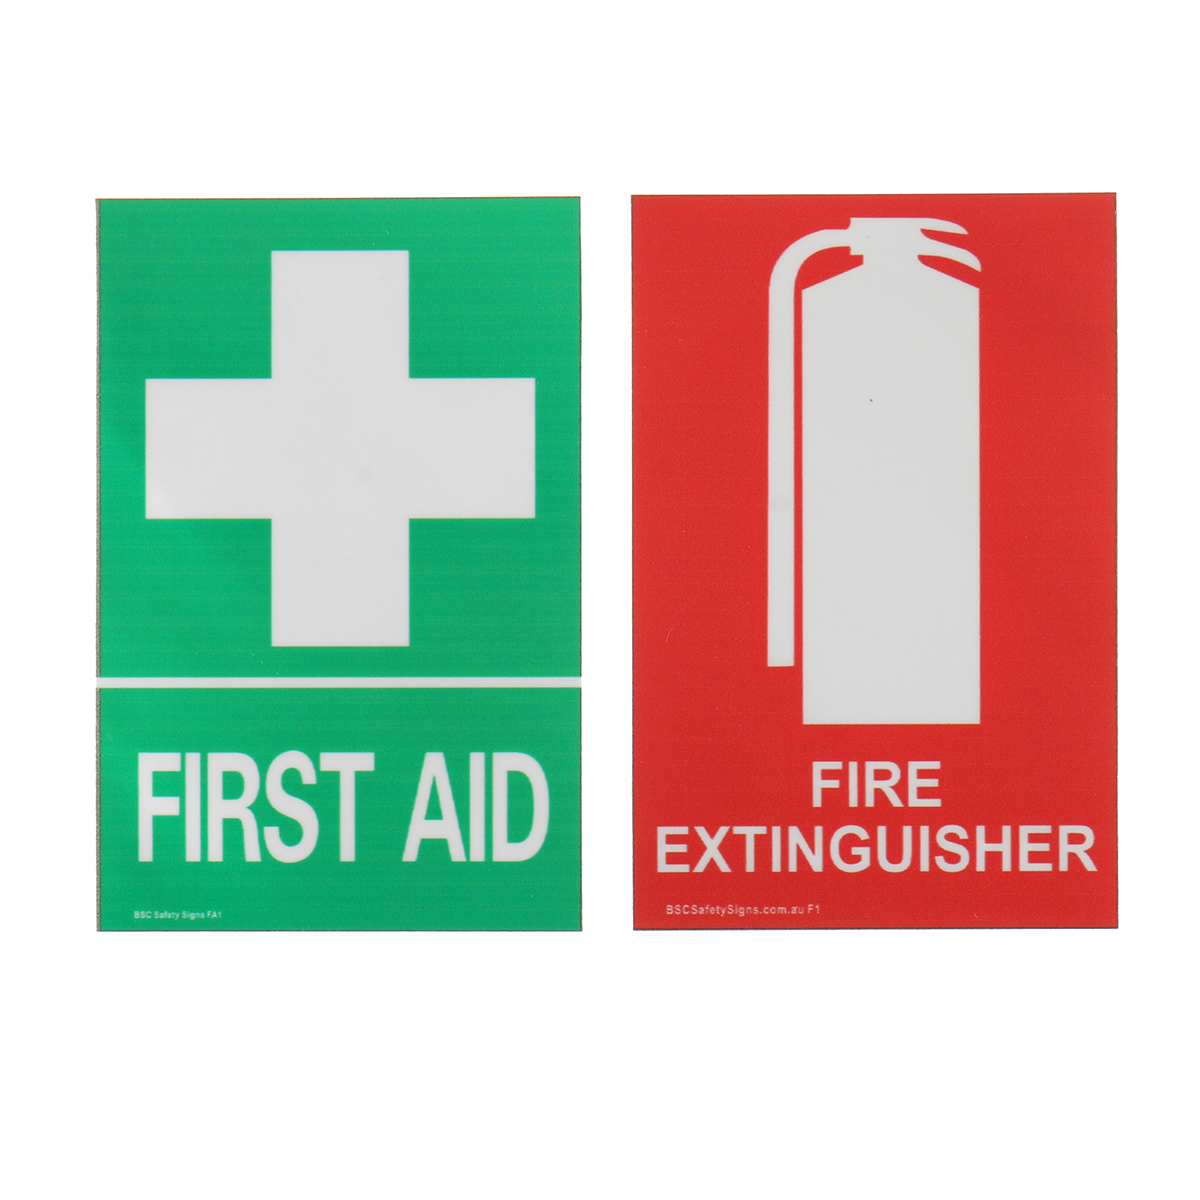 100x66mm First Aid Fire Extinguisher Pvc Sticker Sign